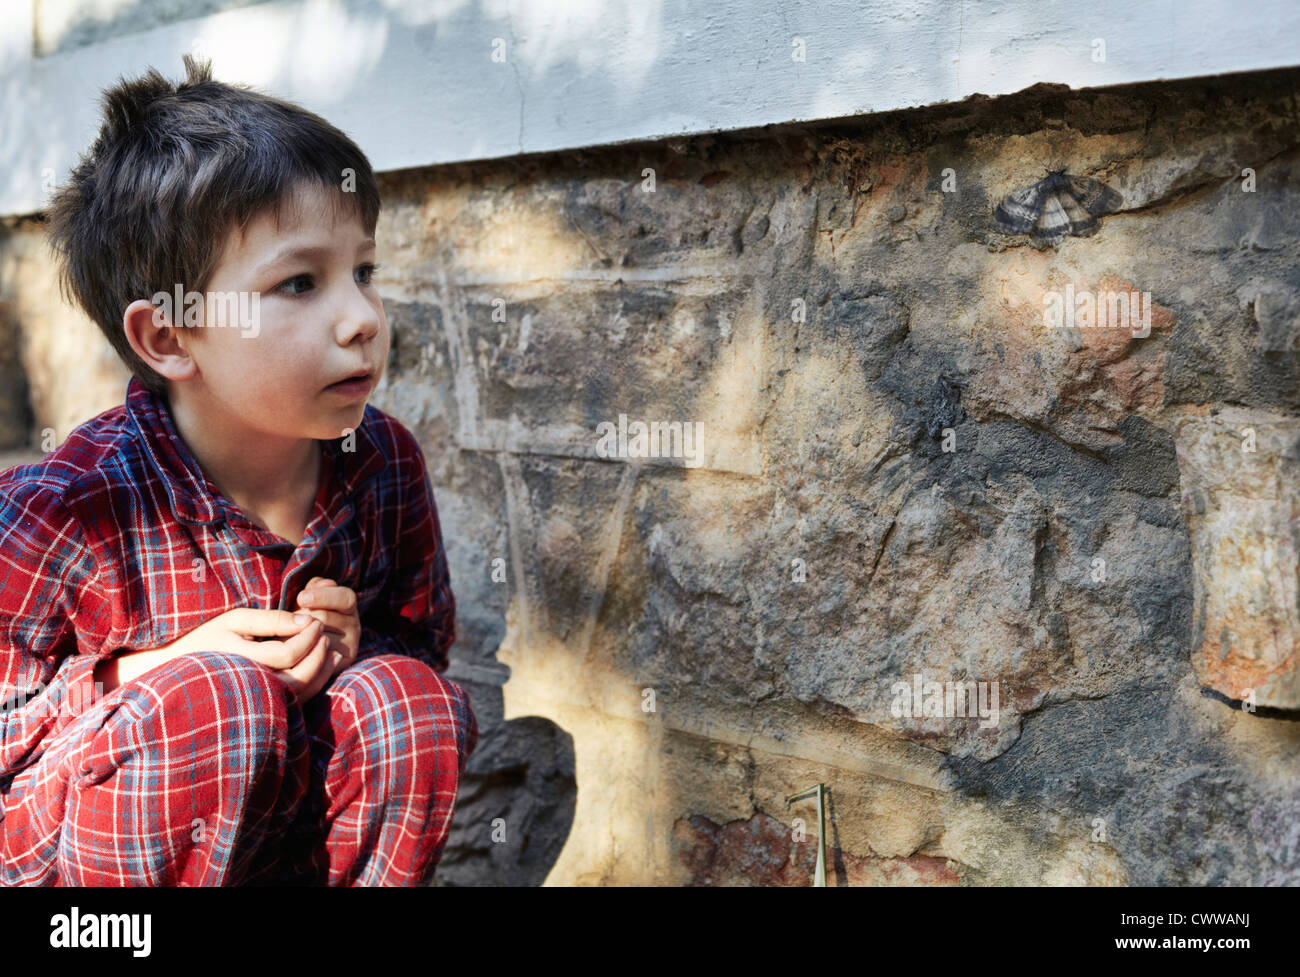 Boy examining moth on stone wall - Stock Image